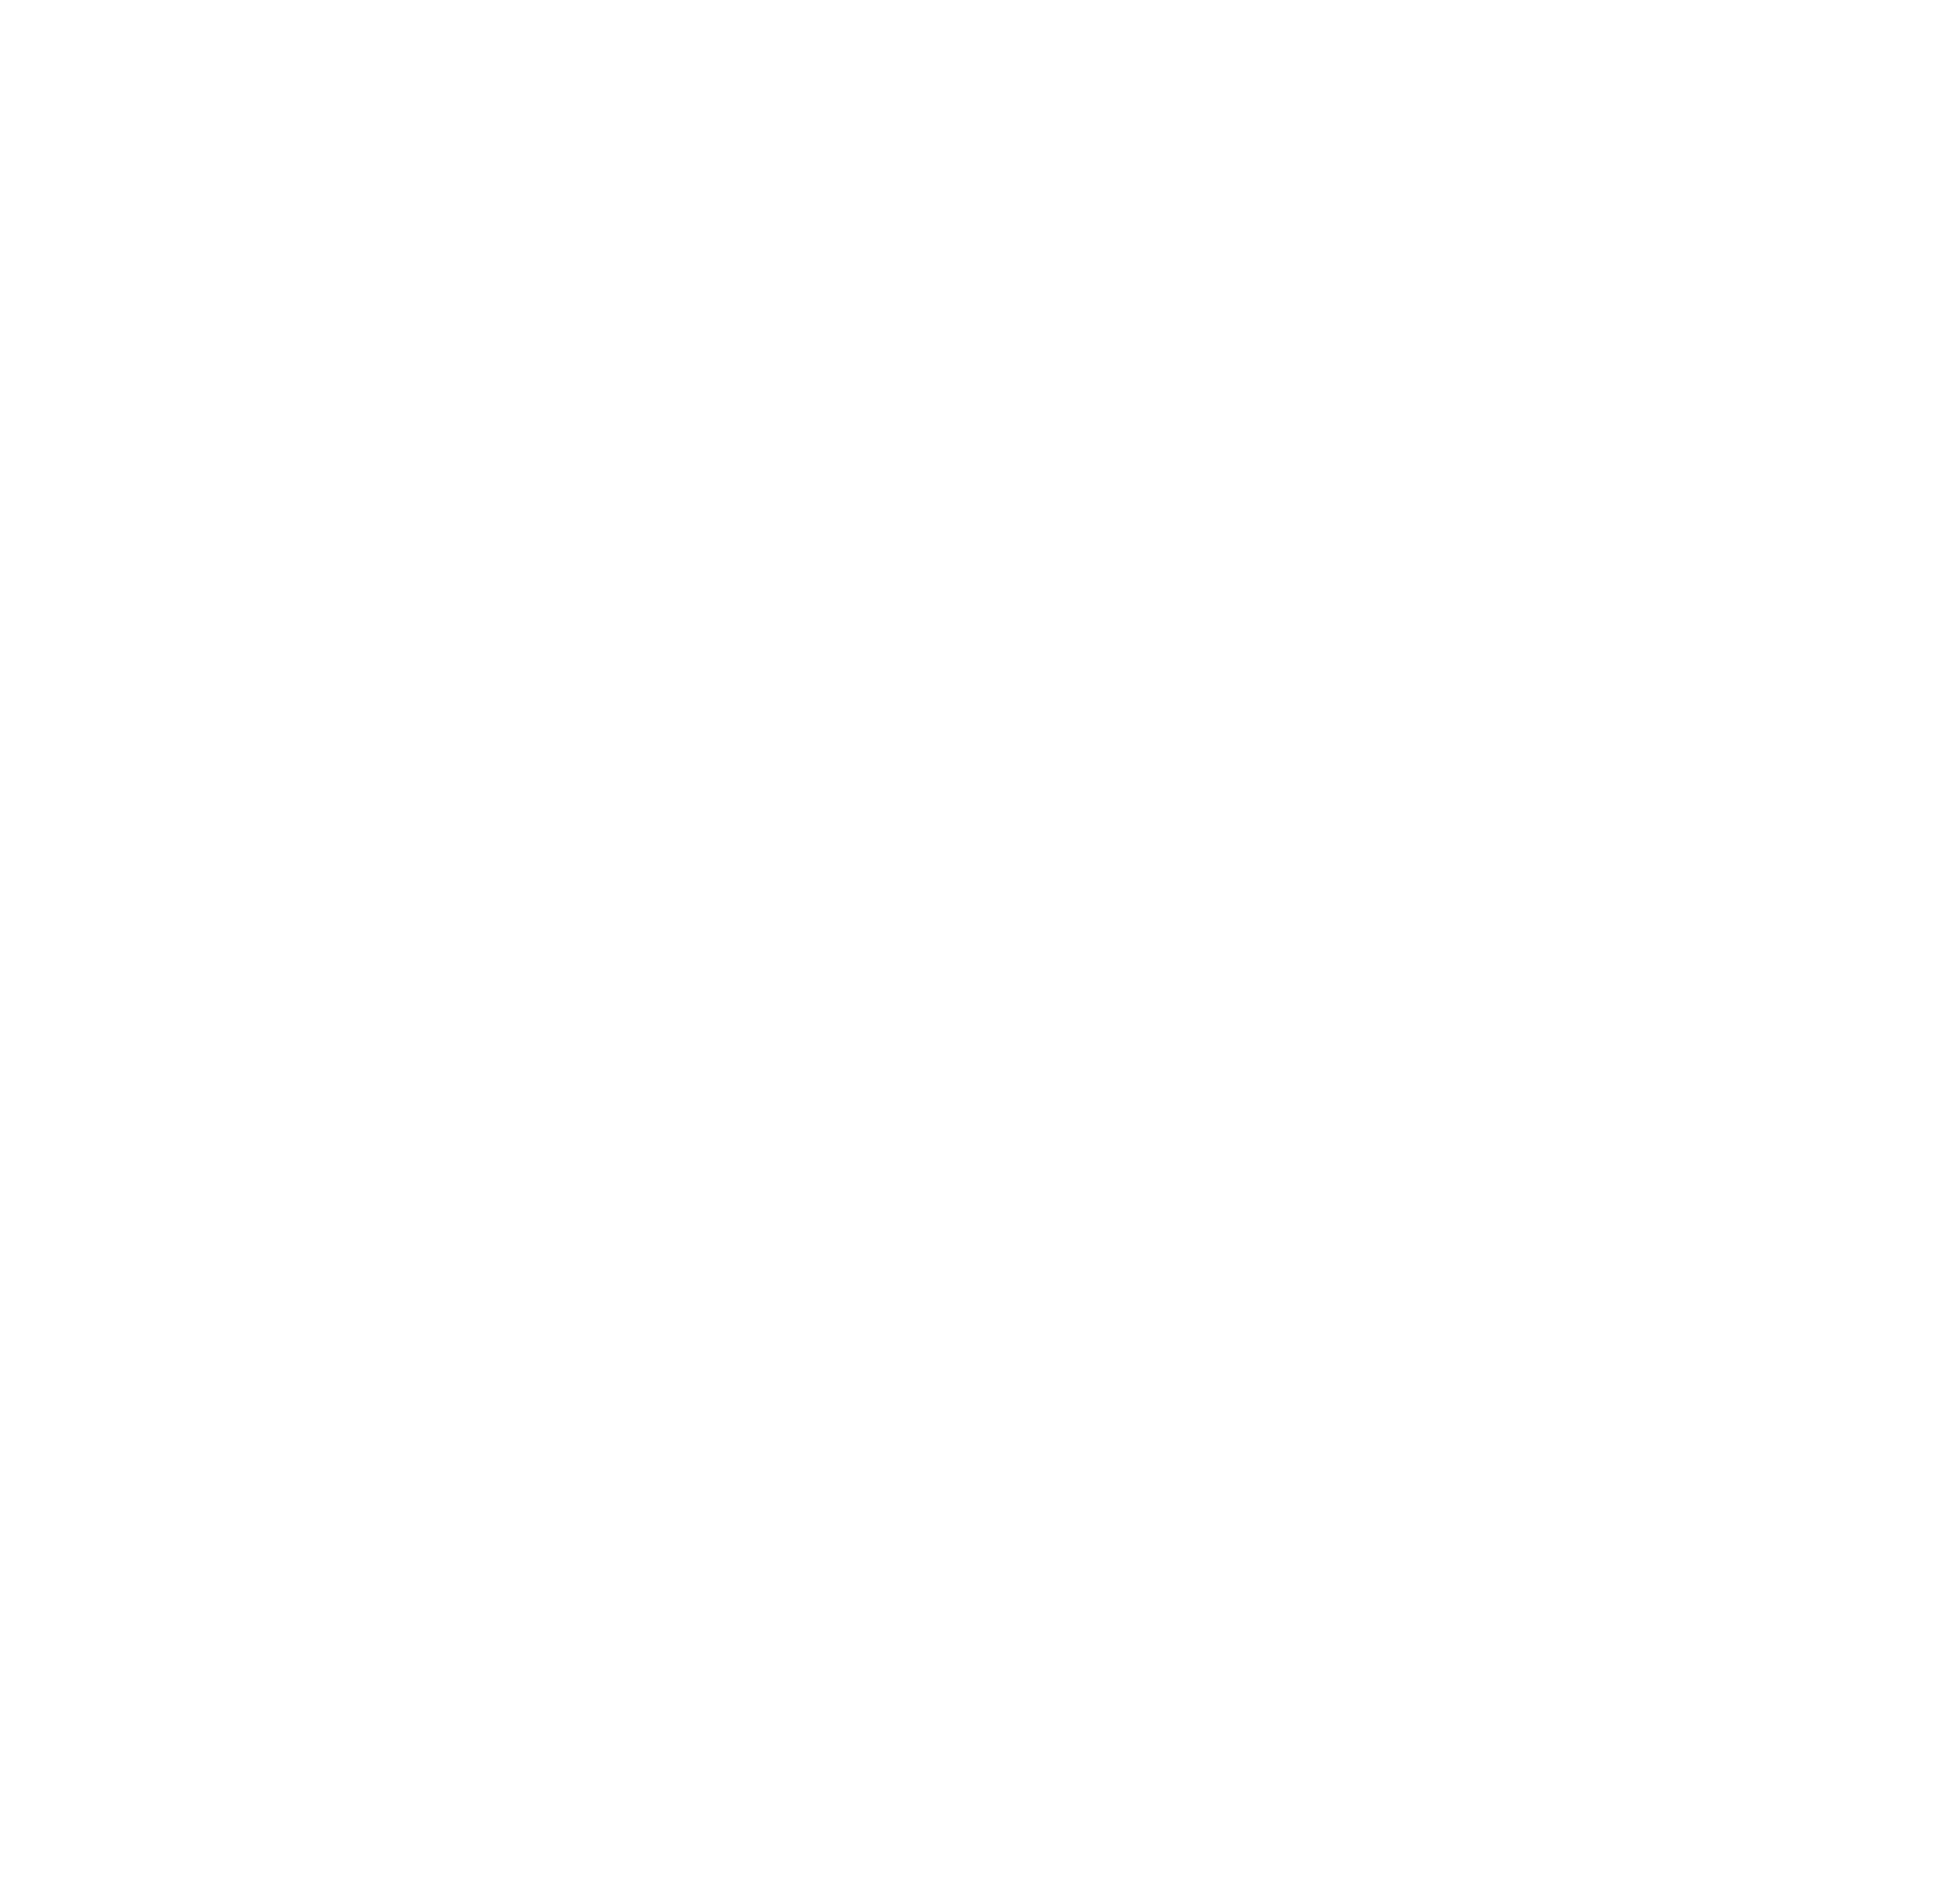 Harvested Health LLC.